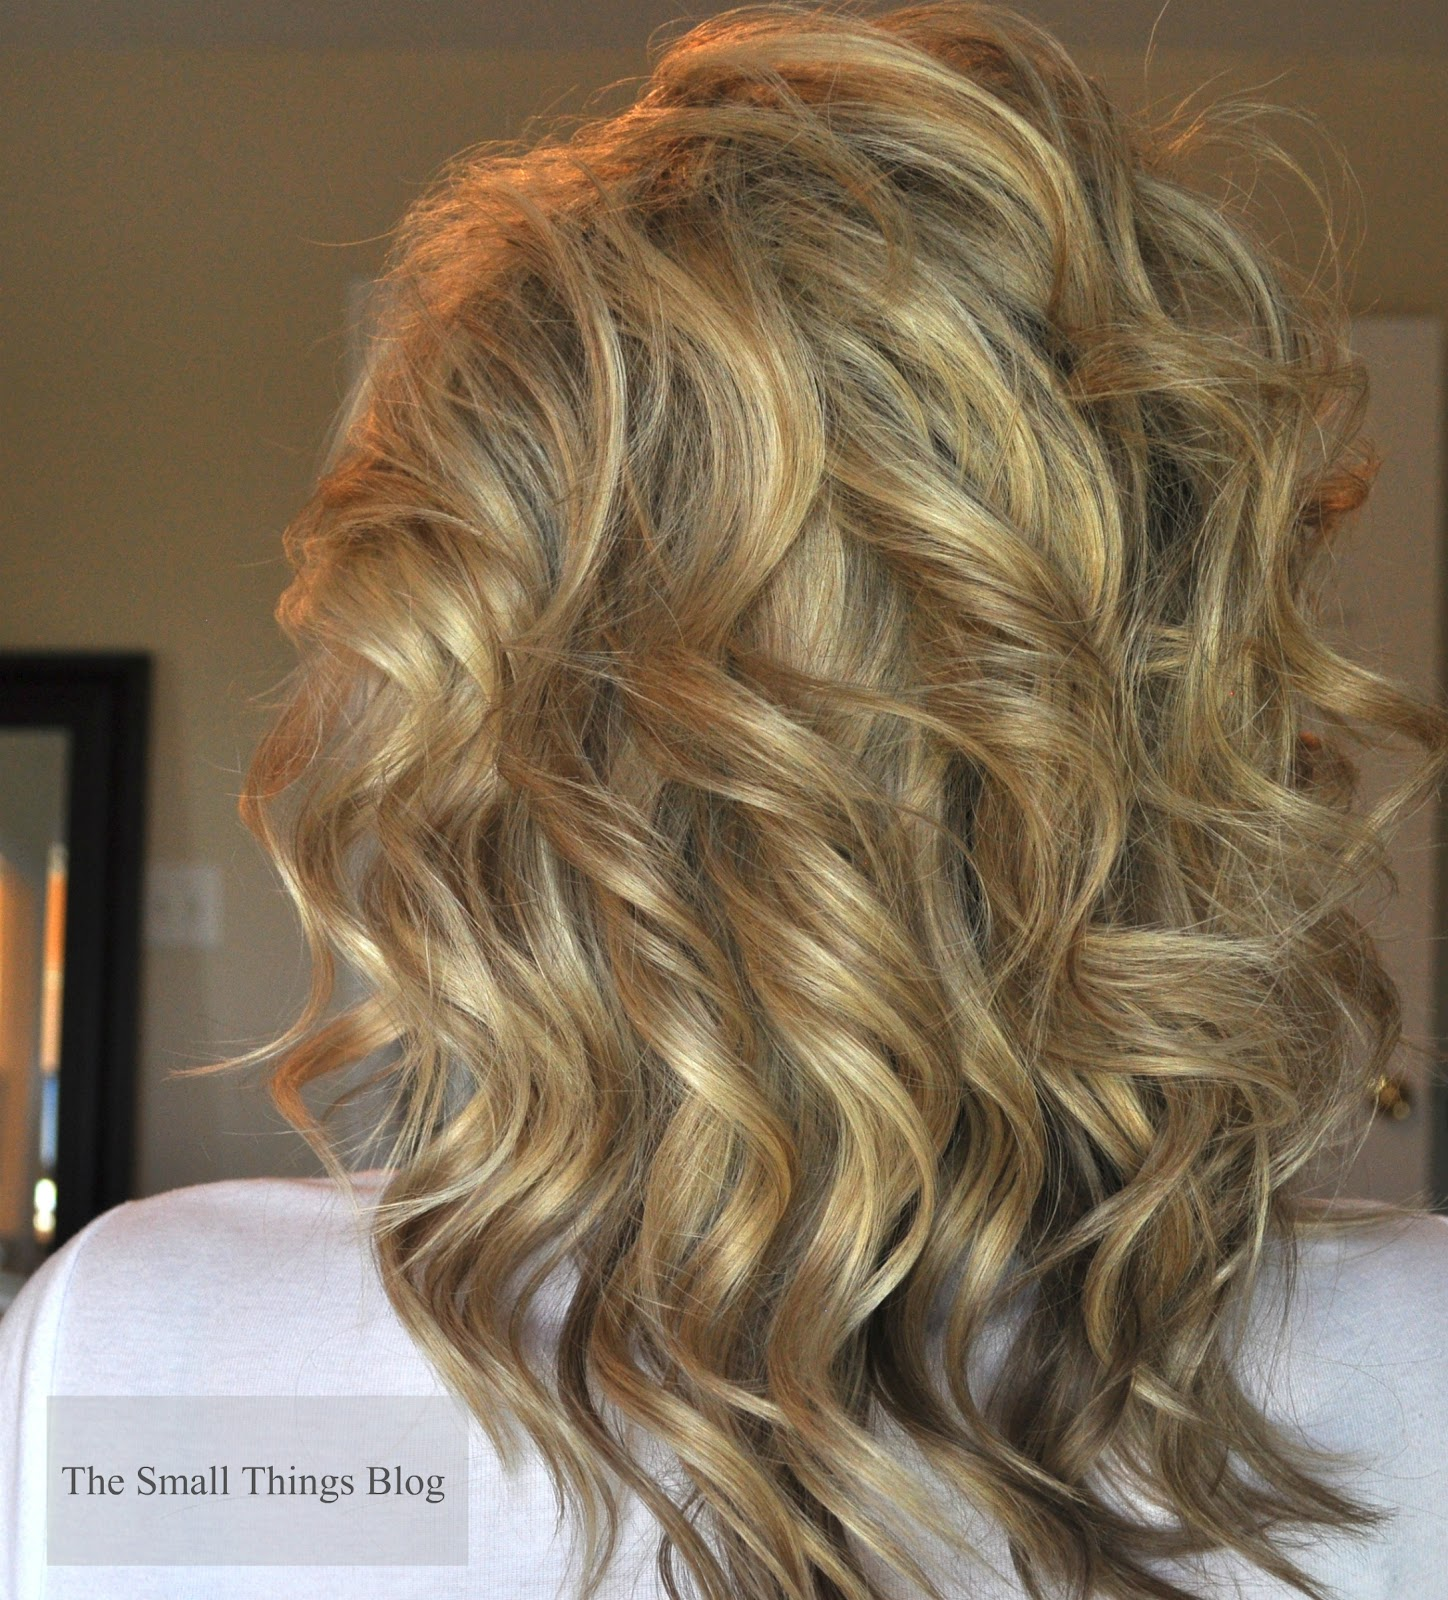 How to use a curling wand – The Small Things Blog